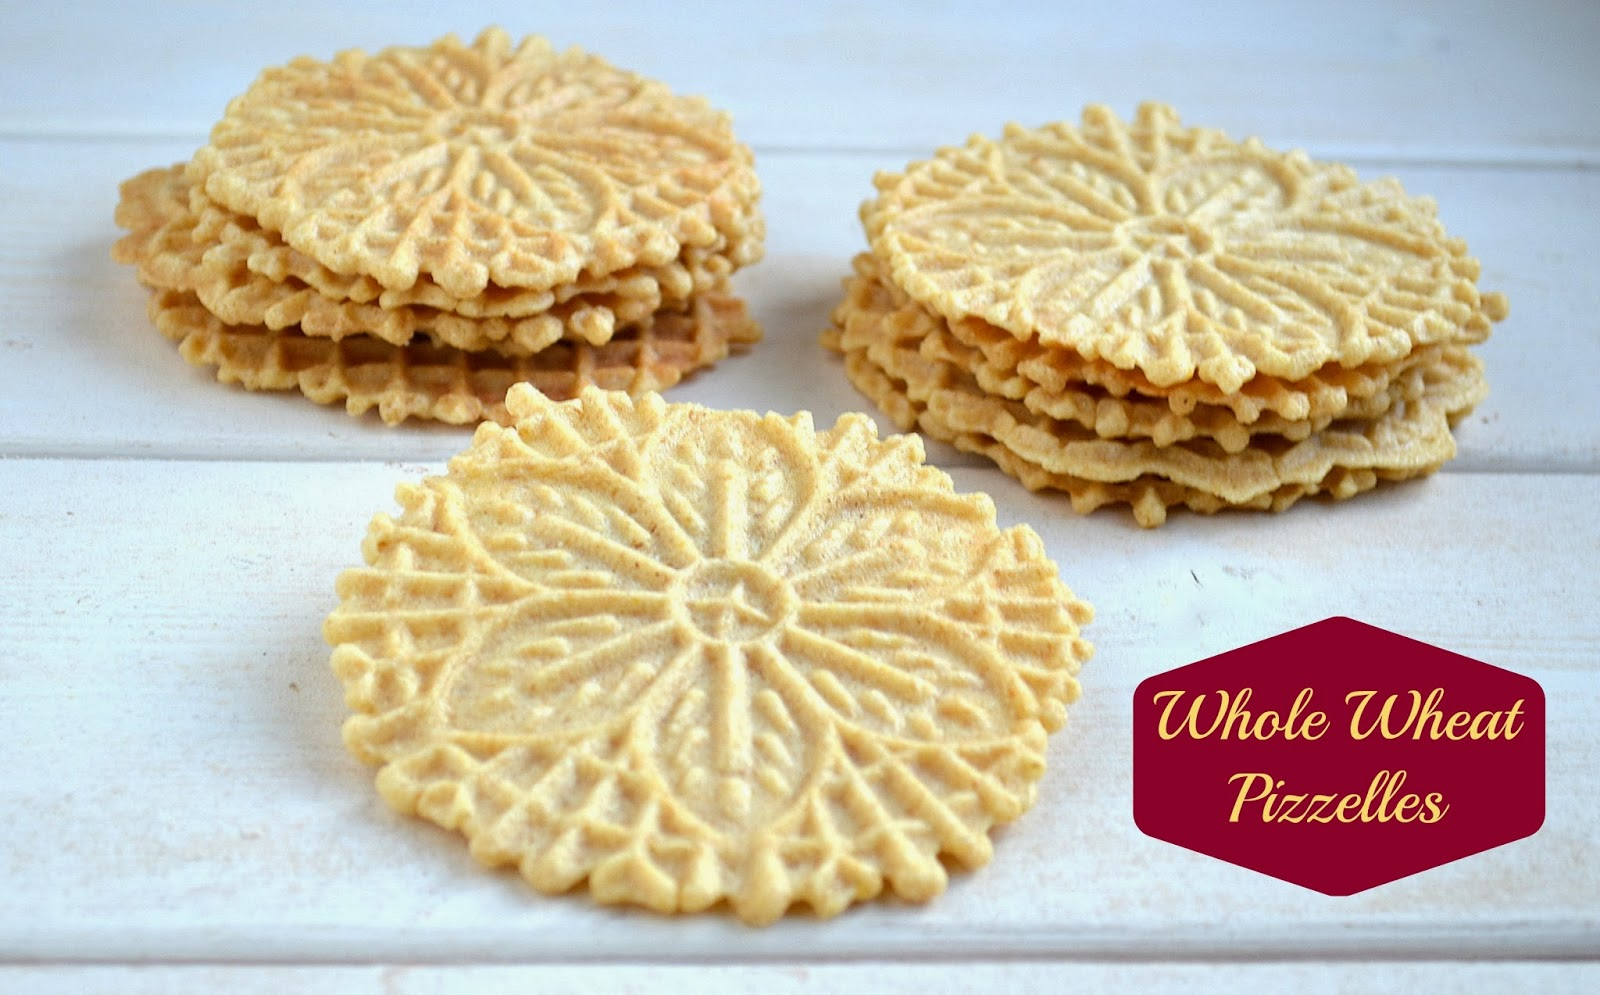 How to Make Half Whole Wheat Pizzelles With Dark Chocolate Speckles